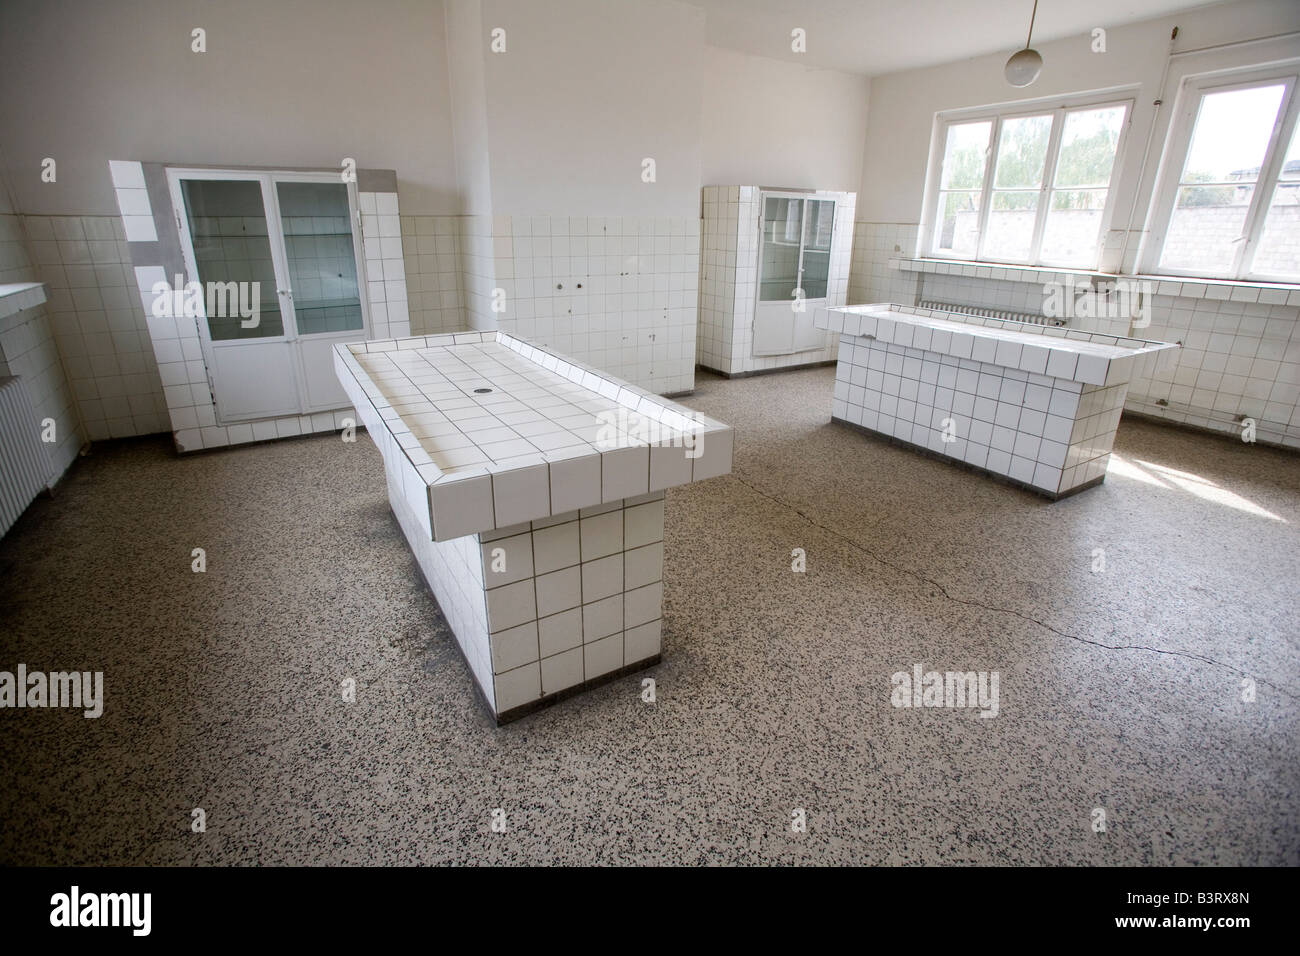 Memorial site Concentration Camp Sachsenhausen pathology with dissection table - Stock Image